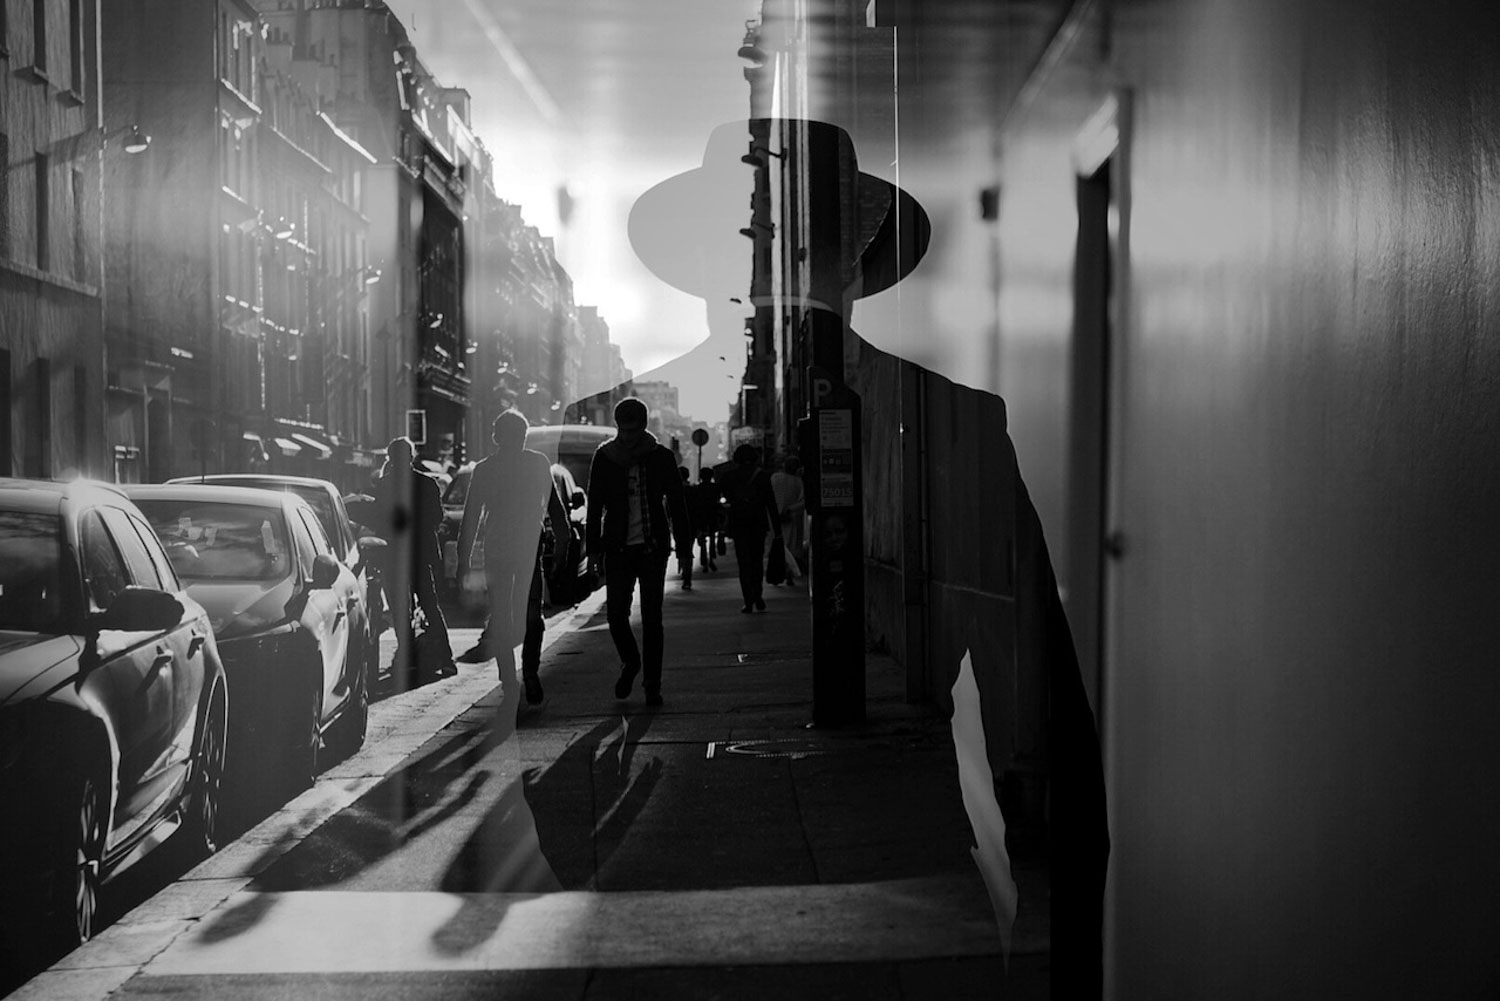 street street photo street photography life is street Greg Paul photographie de rue